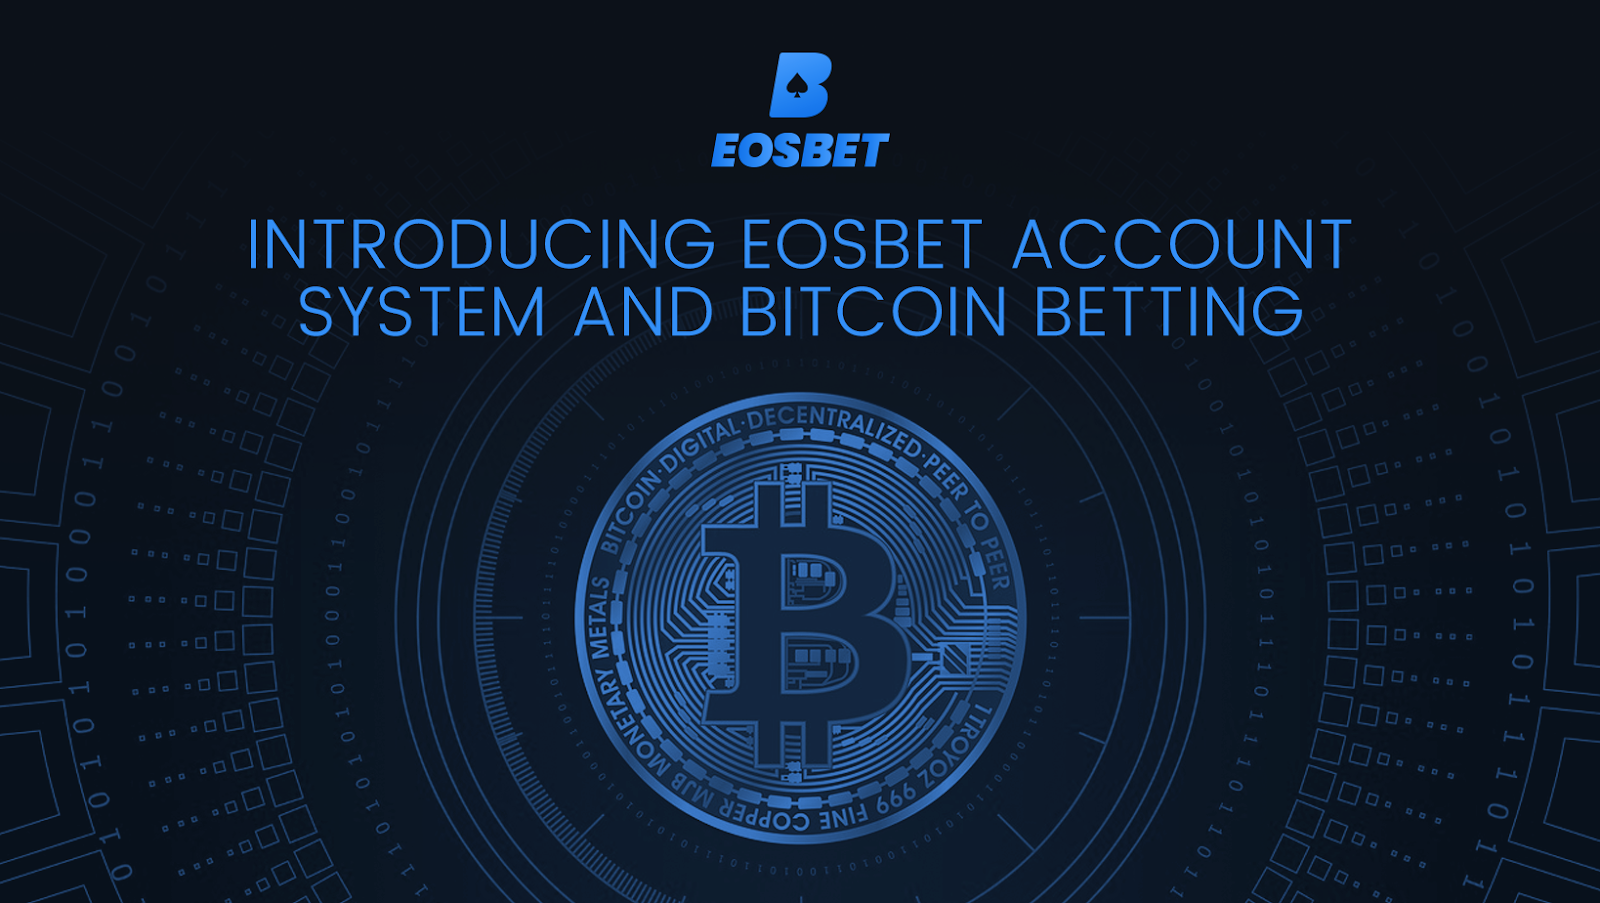 EOSBet Press Release